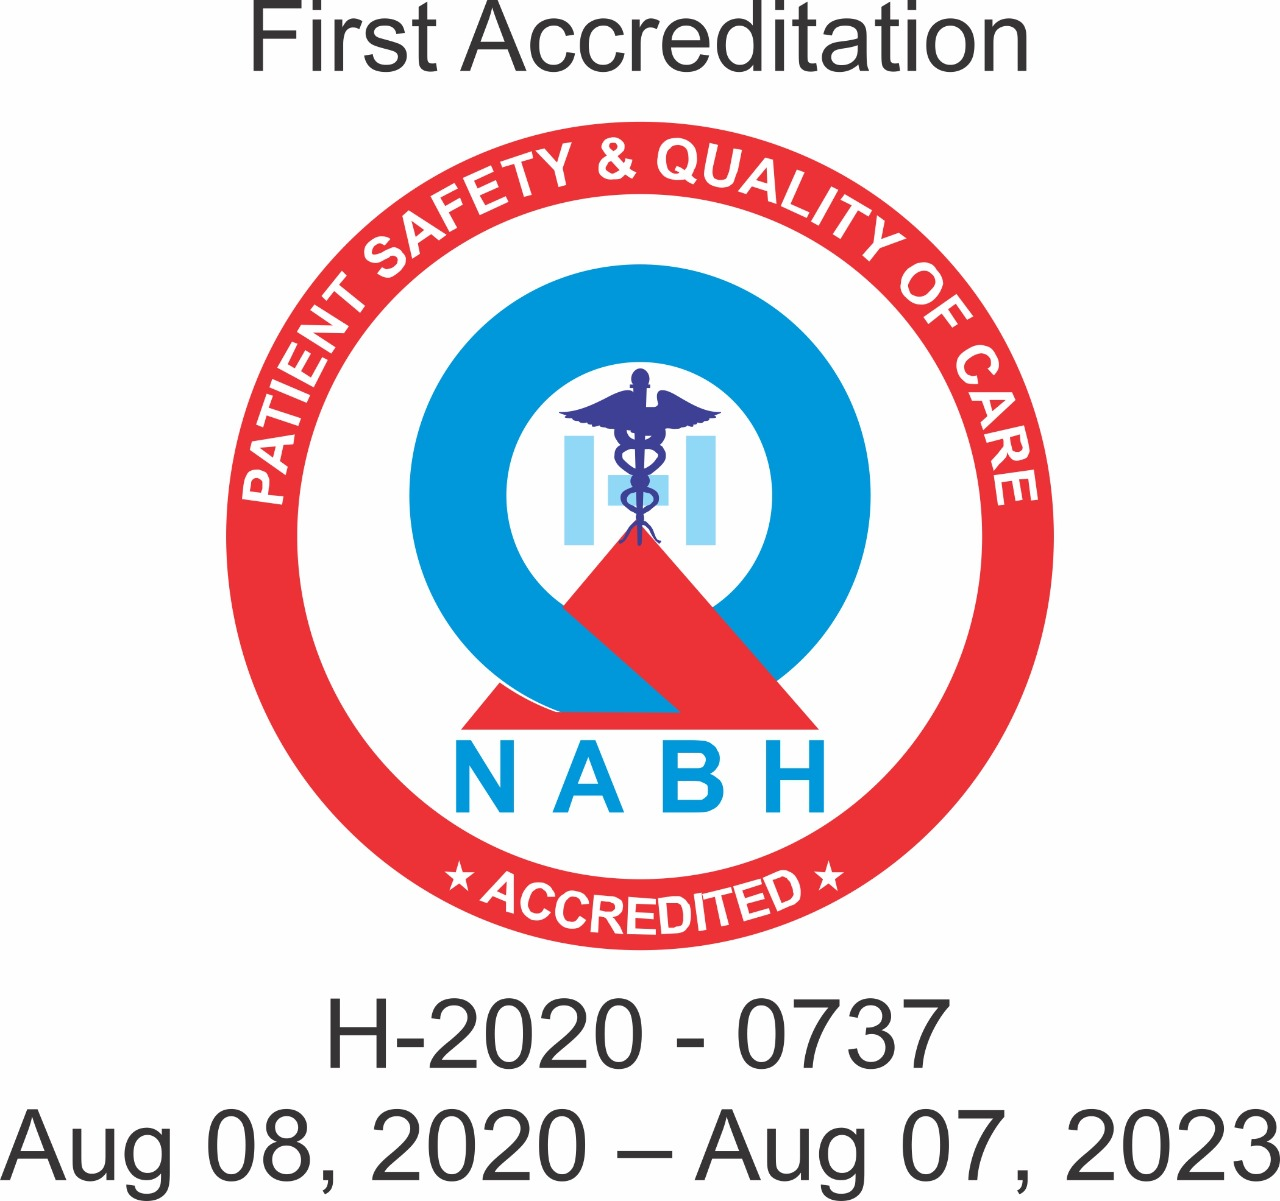 Nabh Entry Level Certification